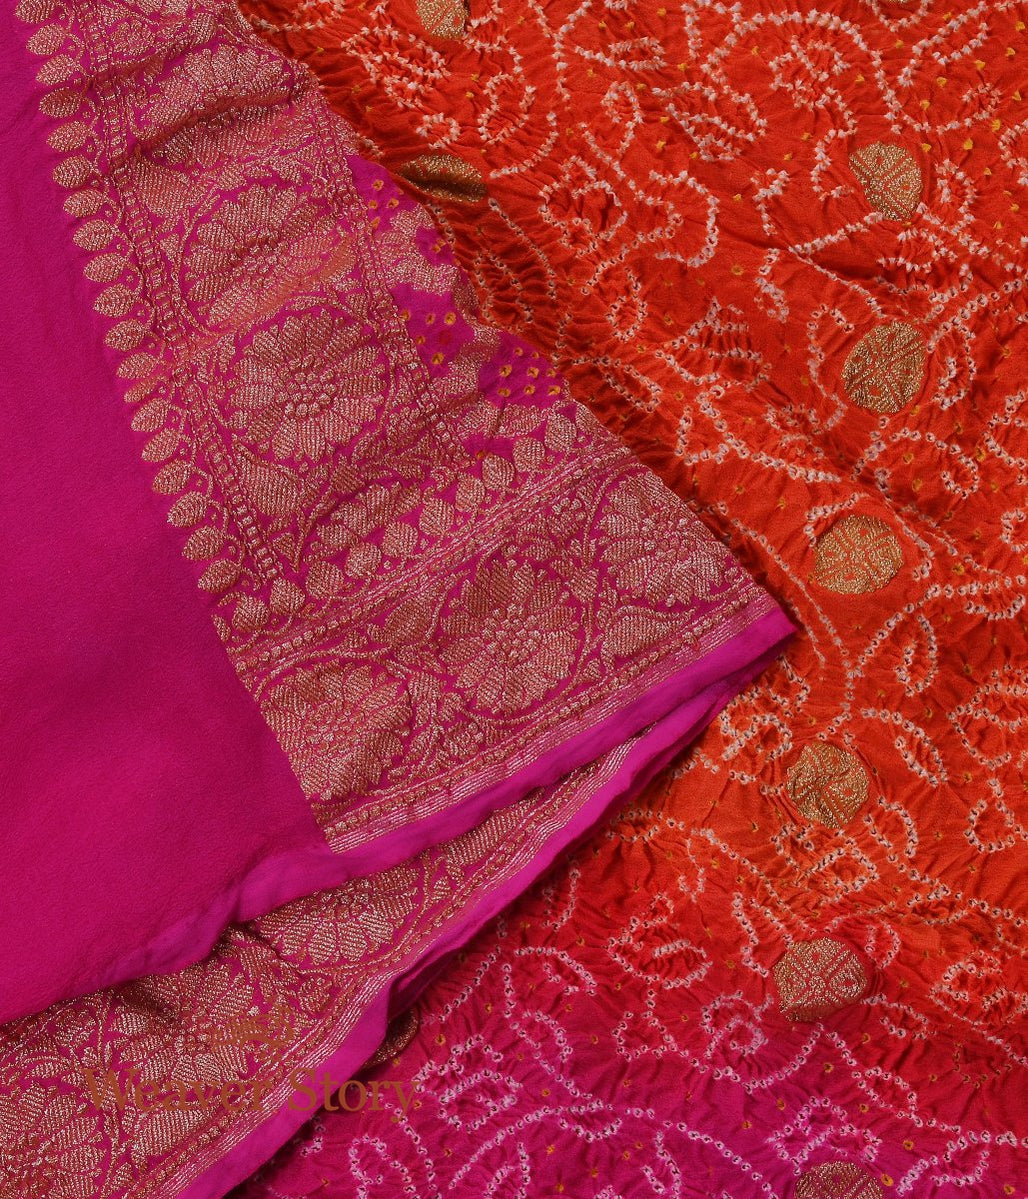 Handwoven Pink and Orange  Ombre Dyed Bandhej Dupatta